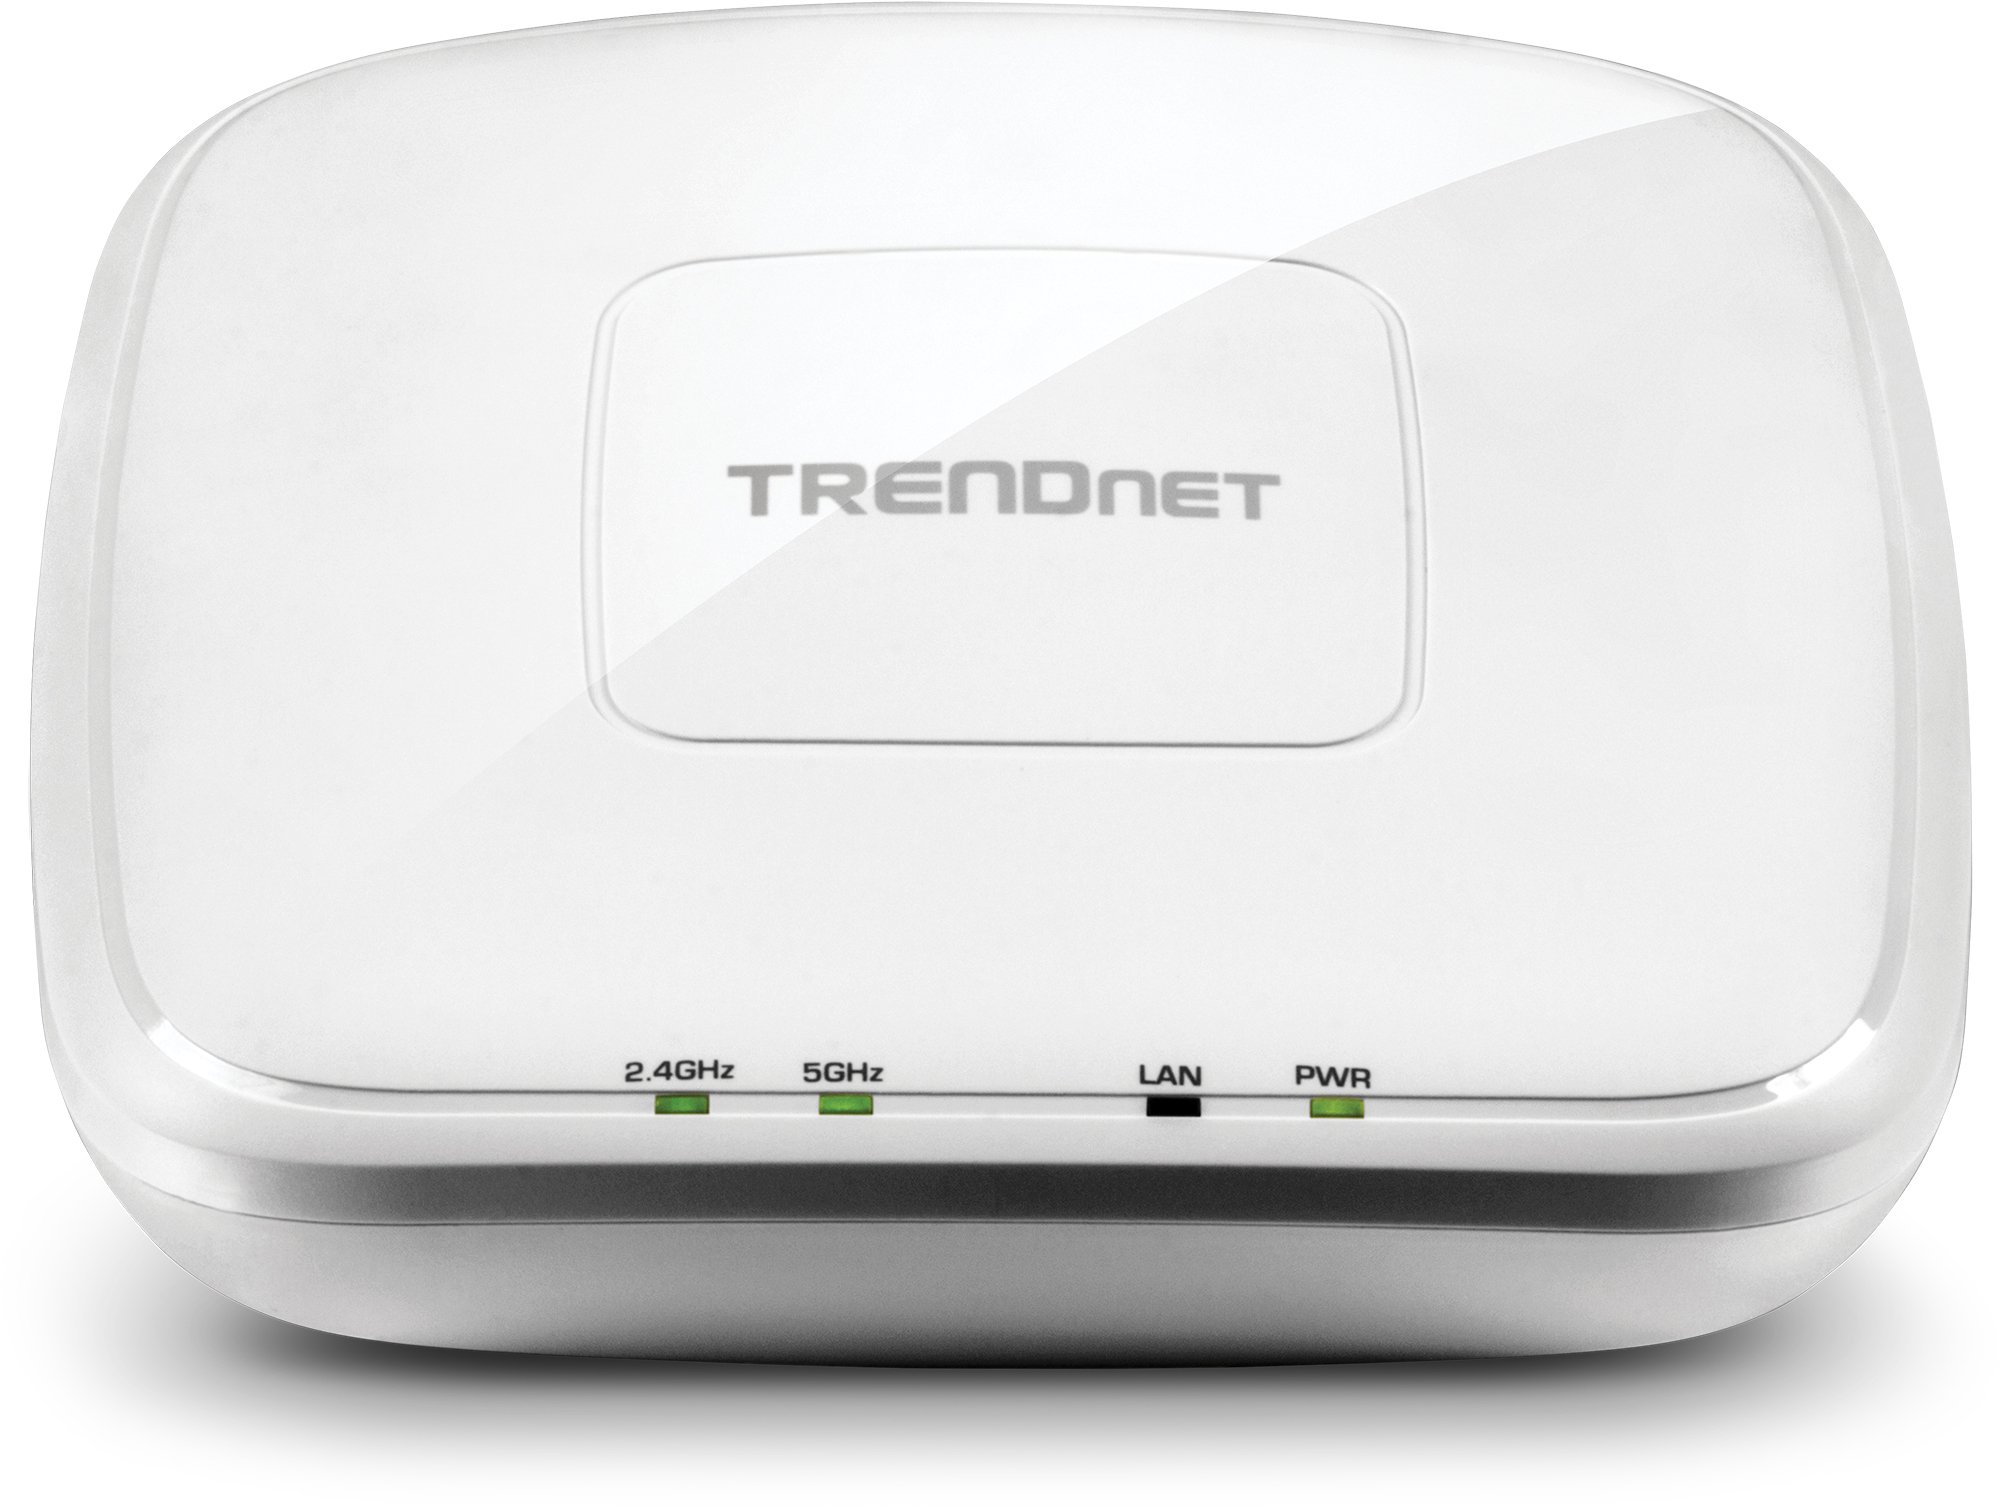 TRENDnet AC1200 Dual Band PoE Access Point, 867 Mbps WiFi AC+ 300 Mbps WiFi N Bands, Client, WDS, AP, WDS Bridge, WDS Station, Repeater Modes, Easy Install, TEW-821DAP by TRENDnet (Image #3)